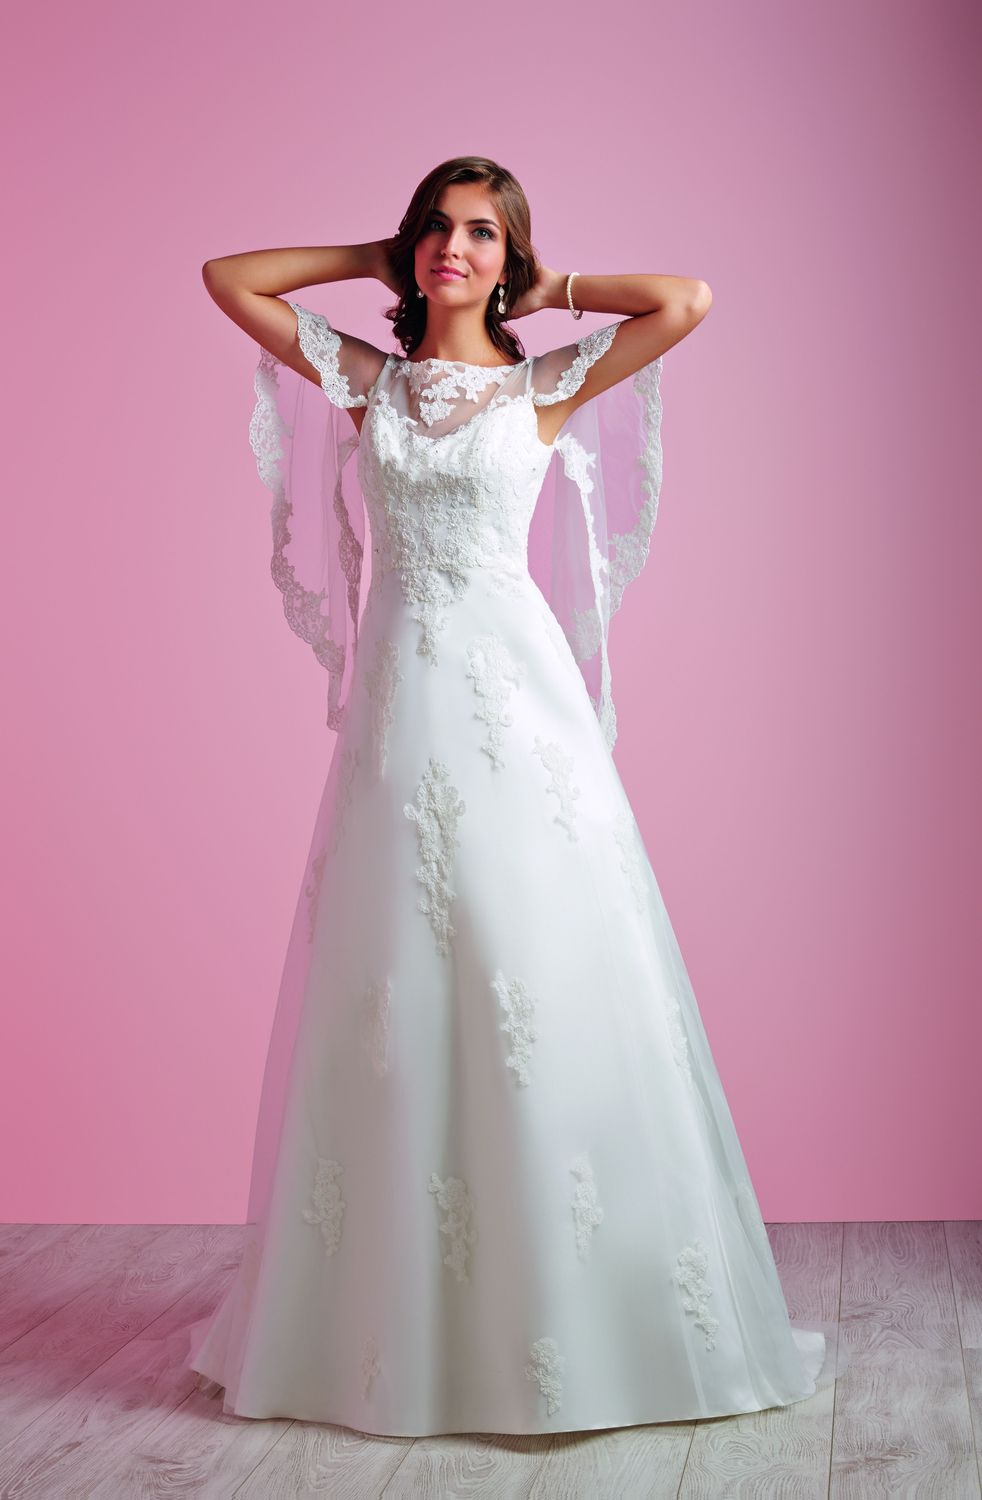 Robe de mari e ladelys par tati collection 2016 robes for Service de nettoyage de robe de mariage